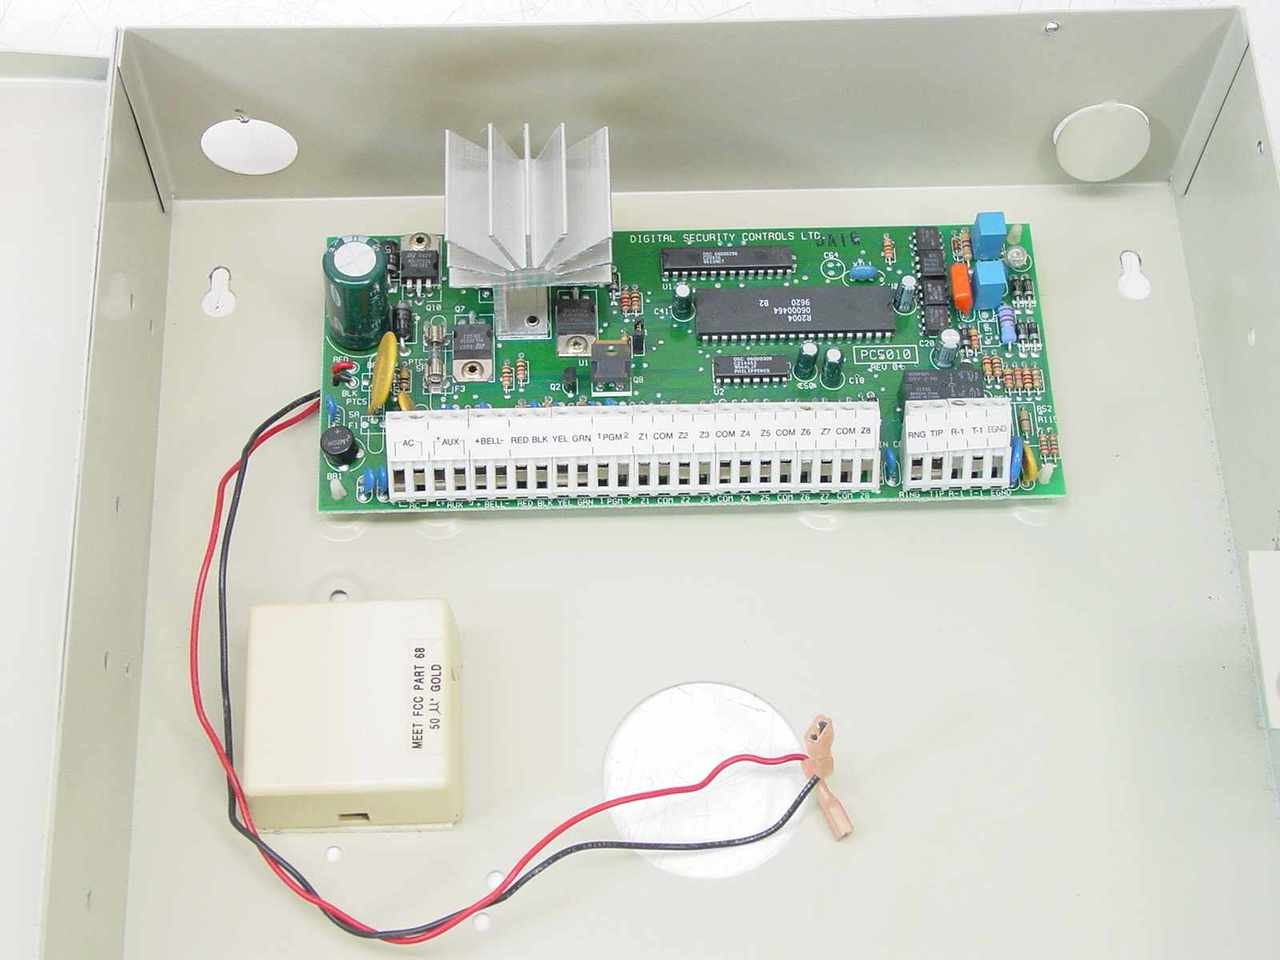 ... DSC PC5010 Power 832 Security System Cabinet ...